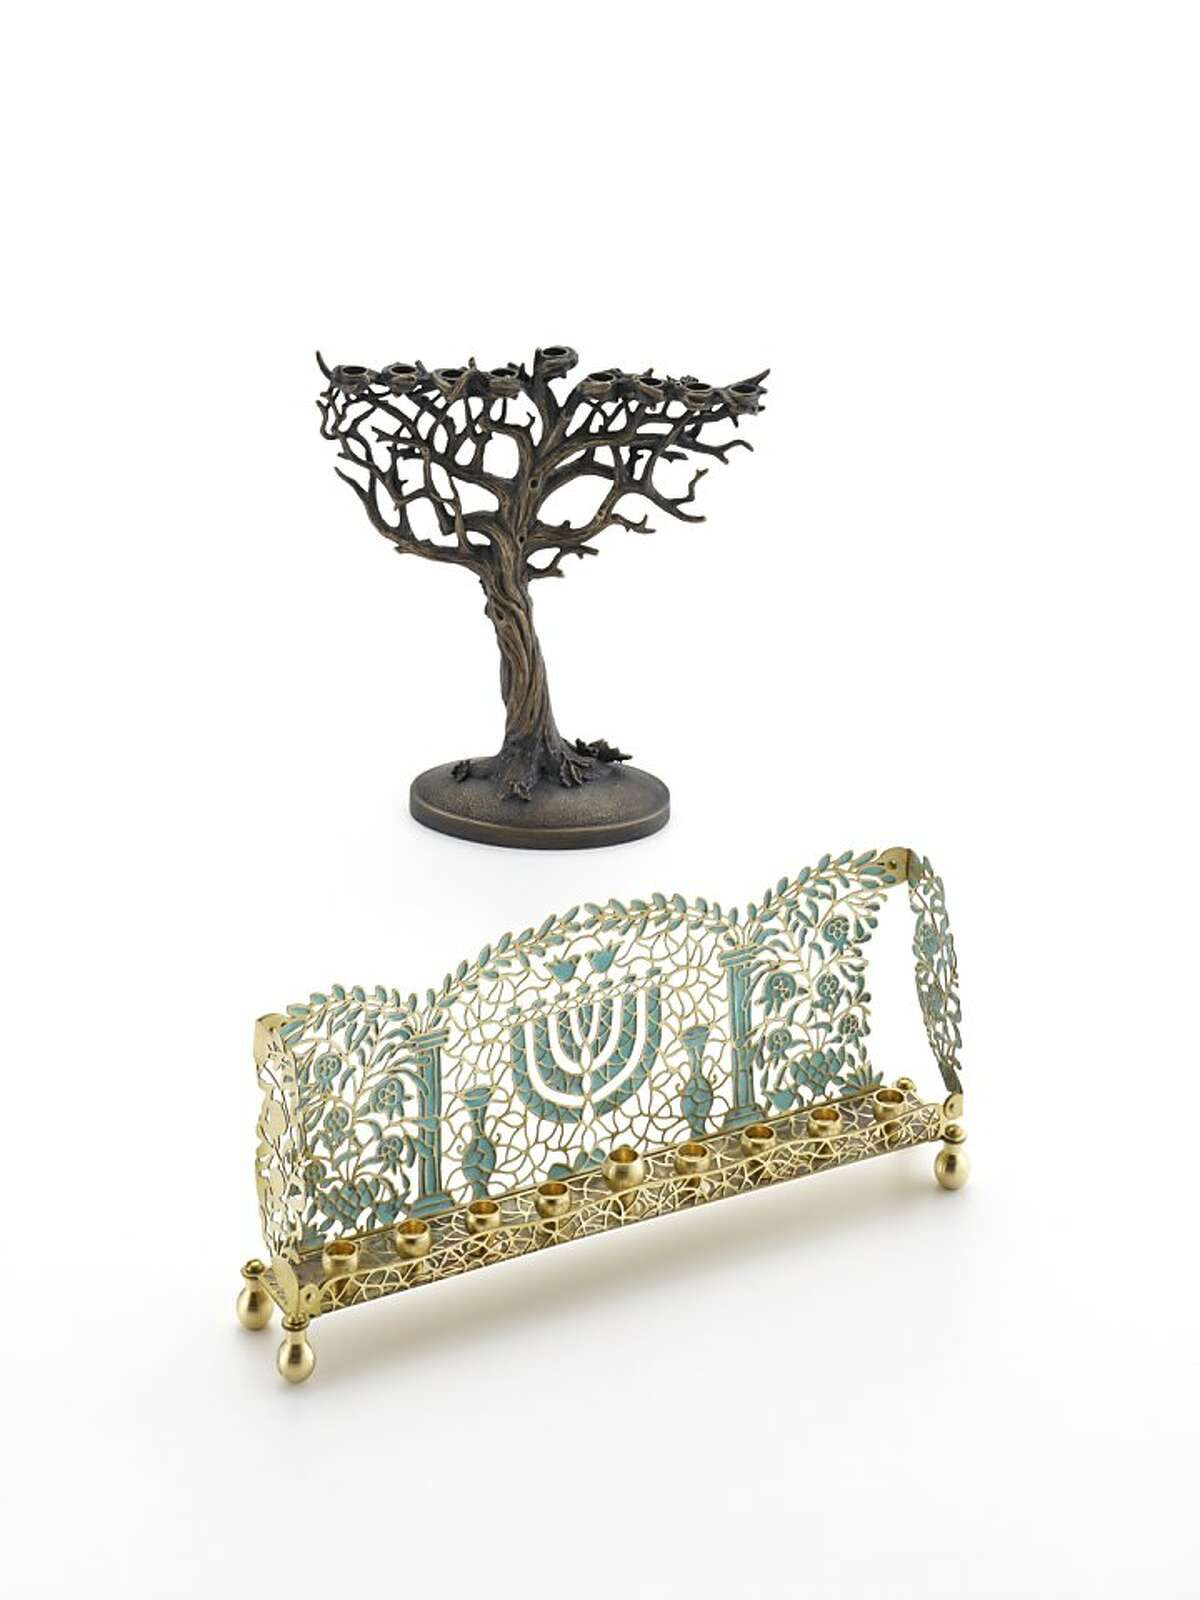 Abraham's Menorah, by Forgotton Judaica. Available at the Contemporary Jewish Museum in San Francisco.